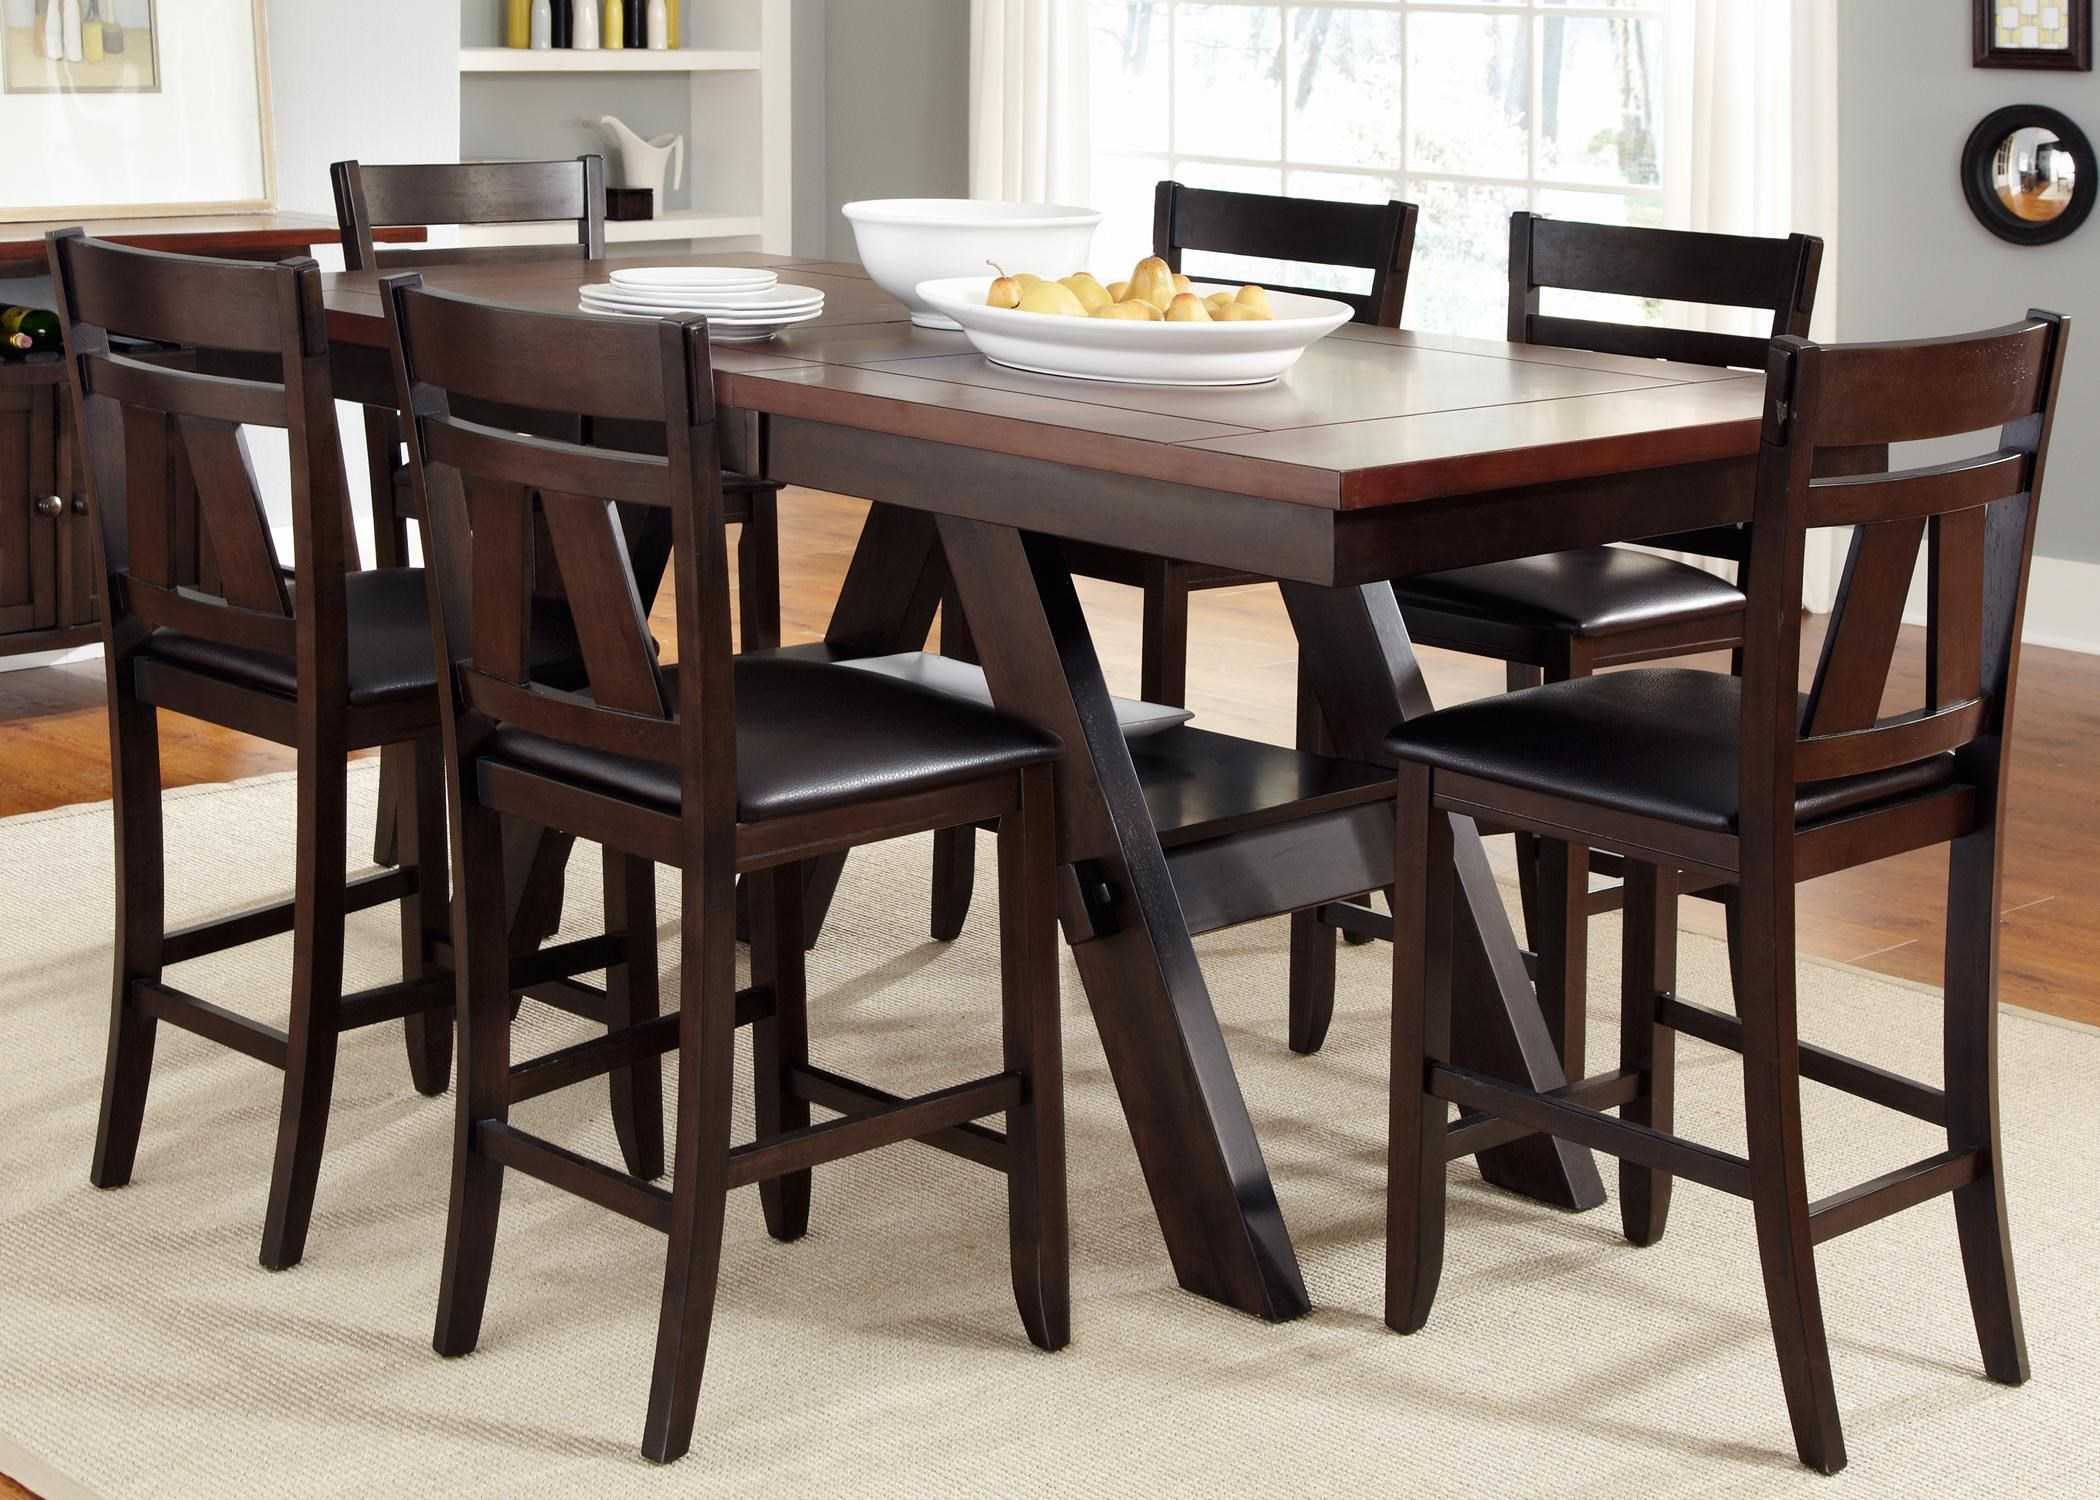 Counter Height Chairs With Arms Lawson 7 Piece Trestle Gathering Table With Counter Height Chairs Set By Vendor 5349 At Becker Furniture World